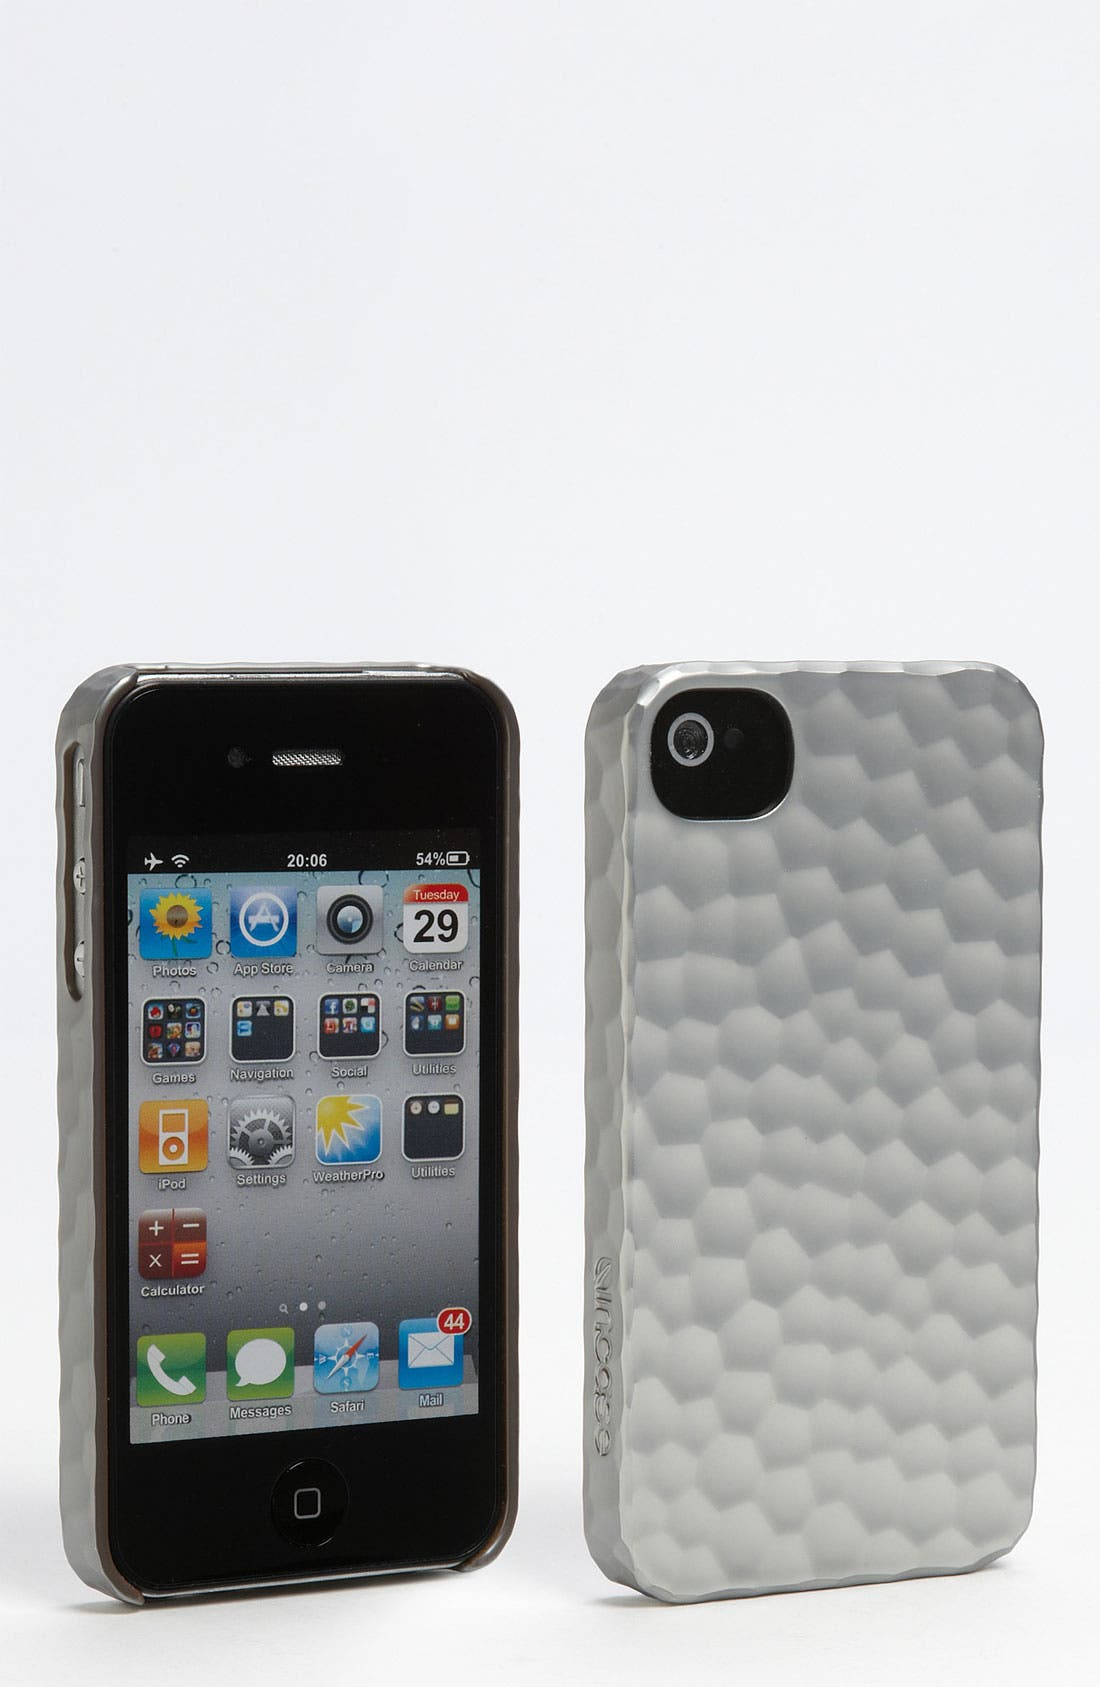 Main Image - Incase Designs 'Iron Hammered' iPhone 4 & 4S Snap Case